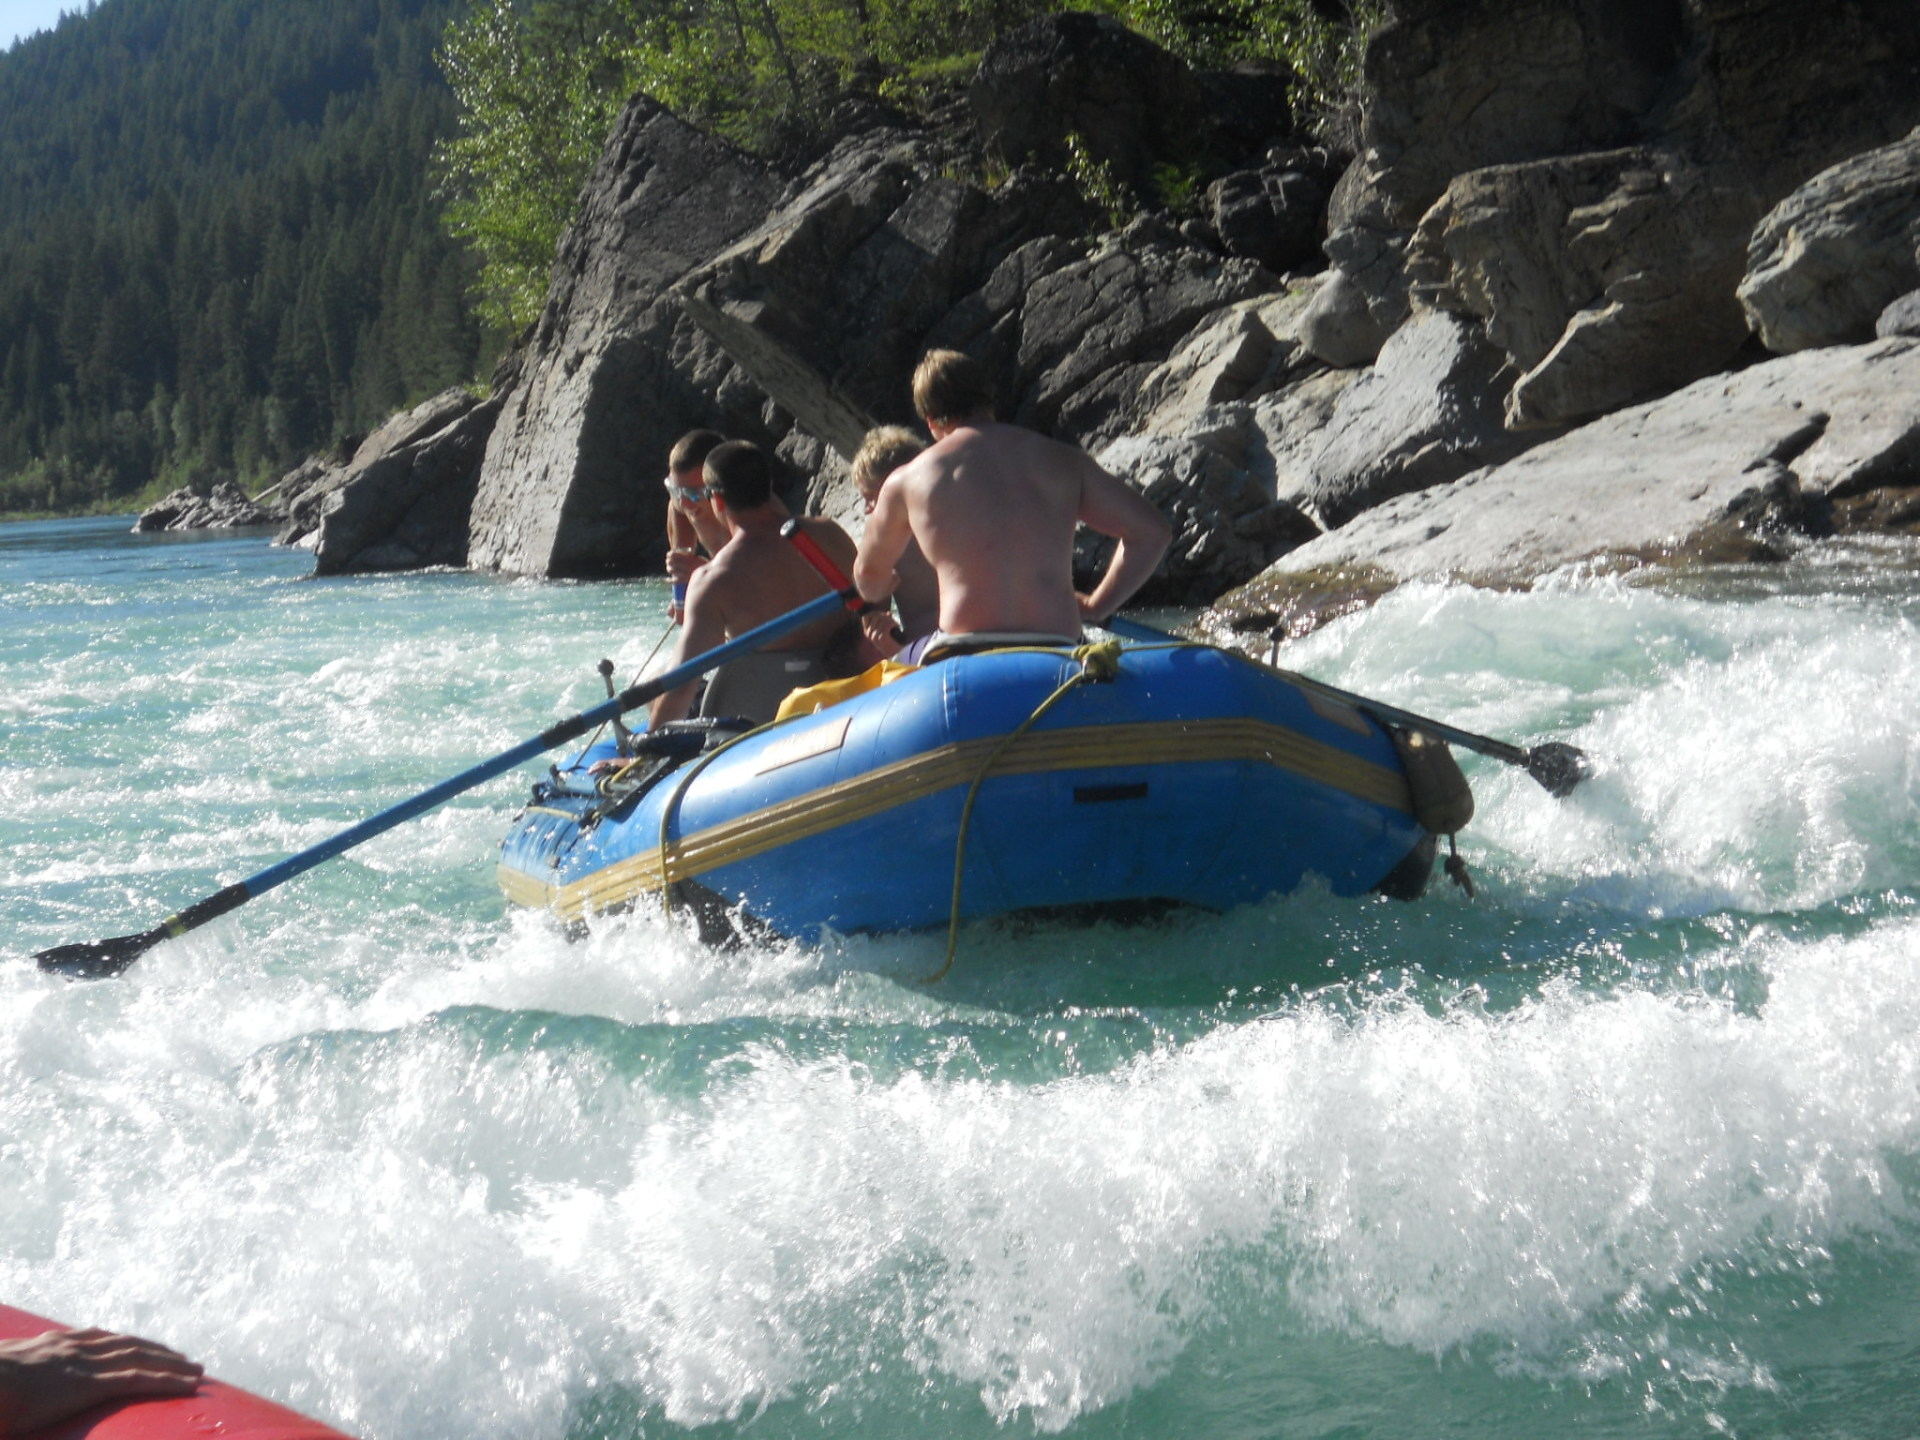 Rapids on the Middle Fork of the Flathead River